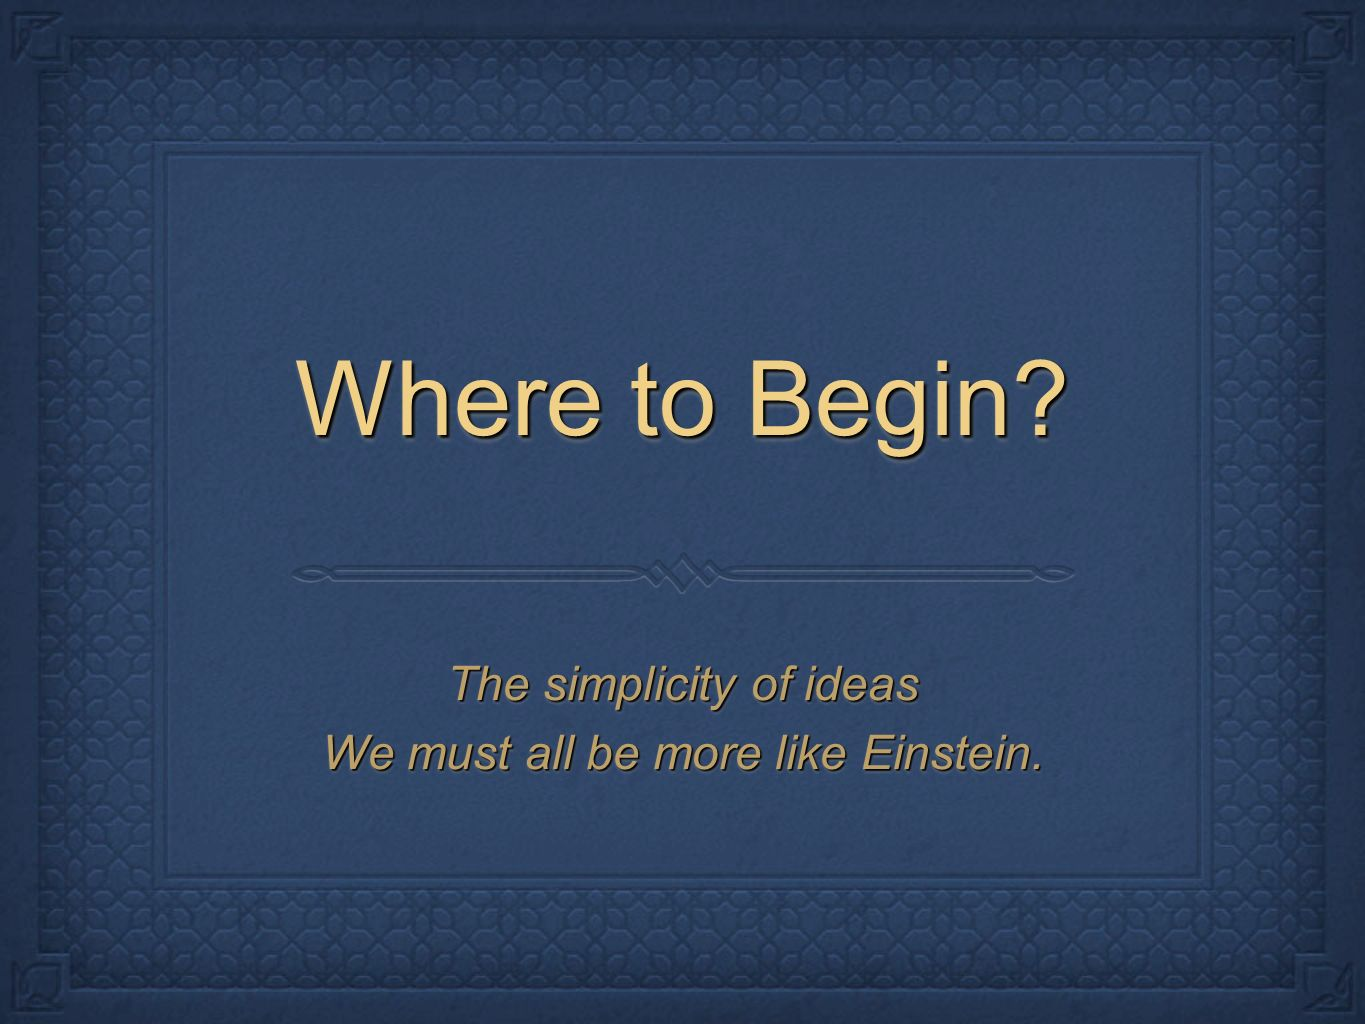 Where to Begin. The simplicity of ideas We must all be more like Einstein.